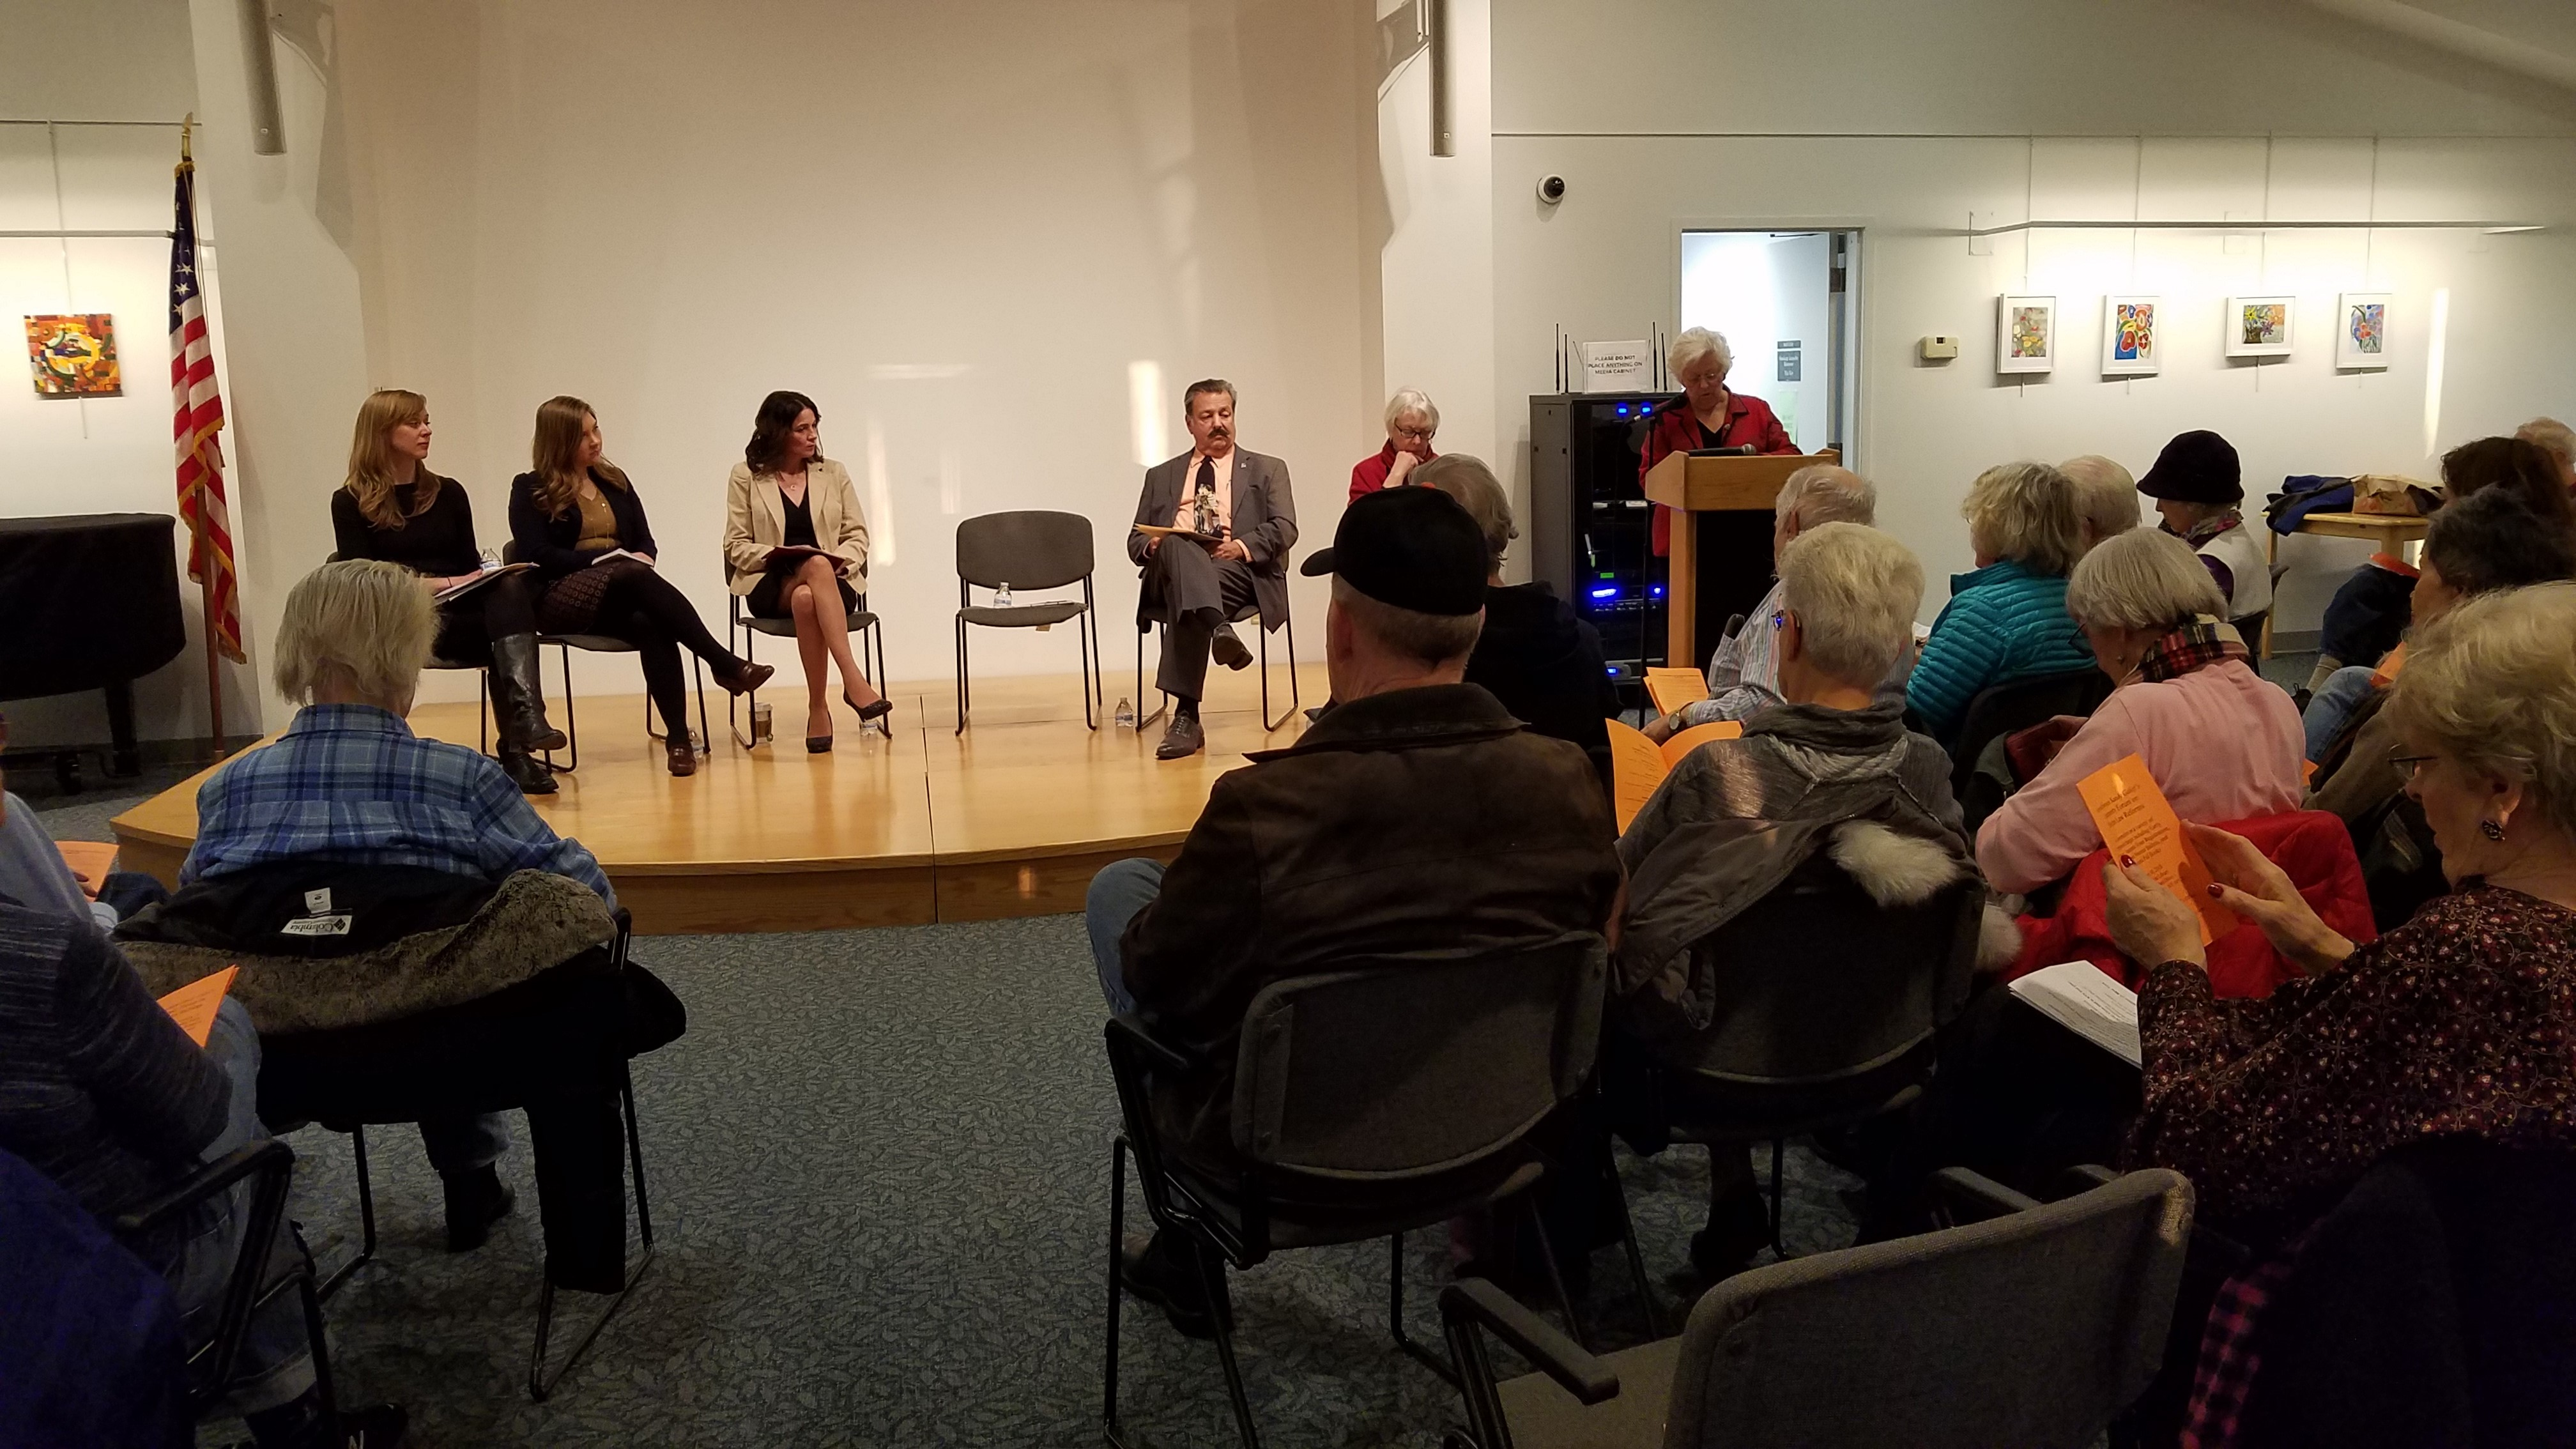 Amidst national scrutiny of voting laws and practices, Sandy held a public meeting to discuss various proposed and current methods of expanding voter access.